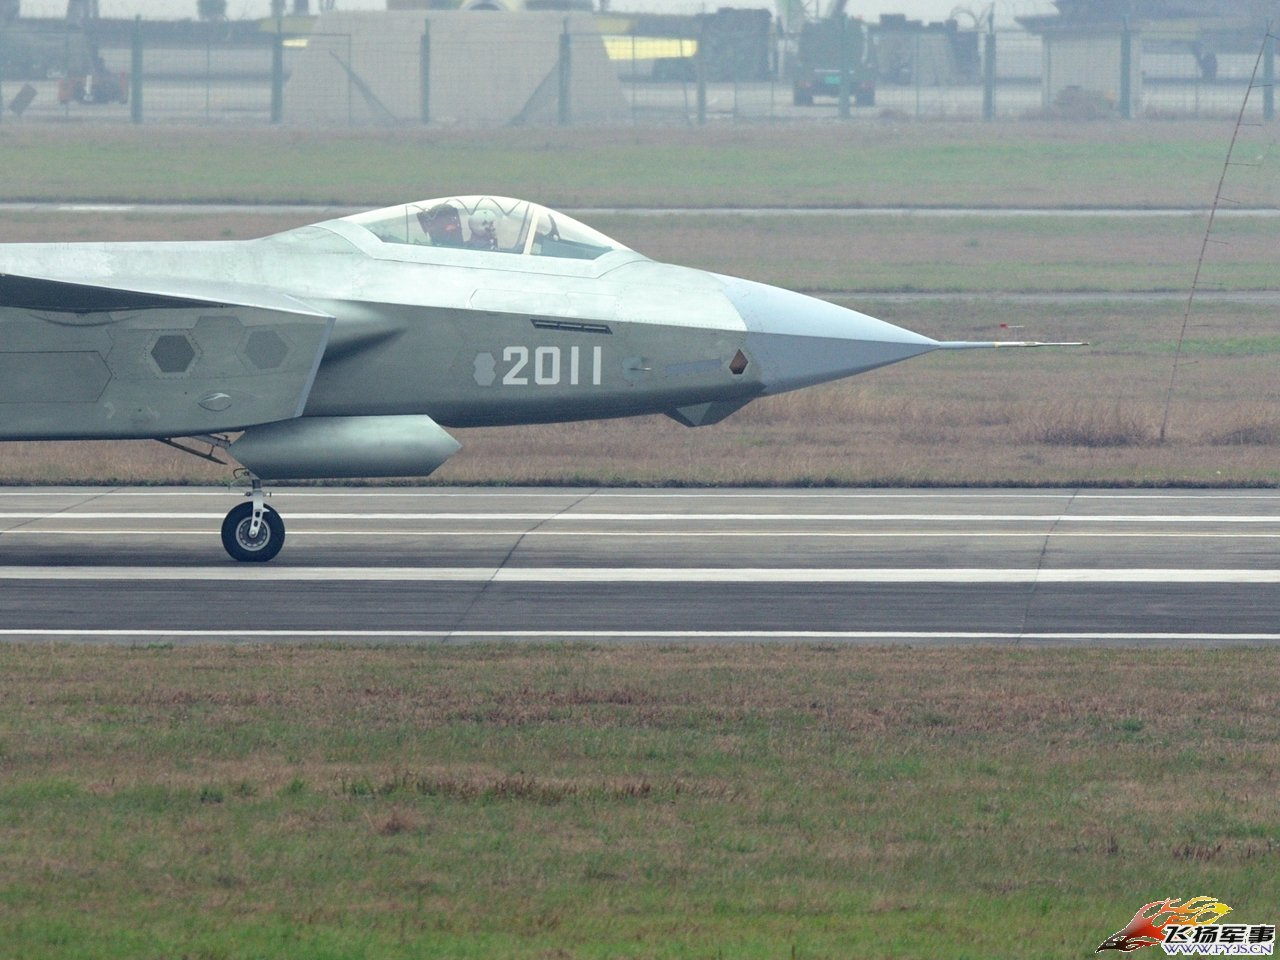 An image of China's newest stealth fighter prototype.